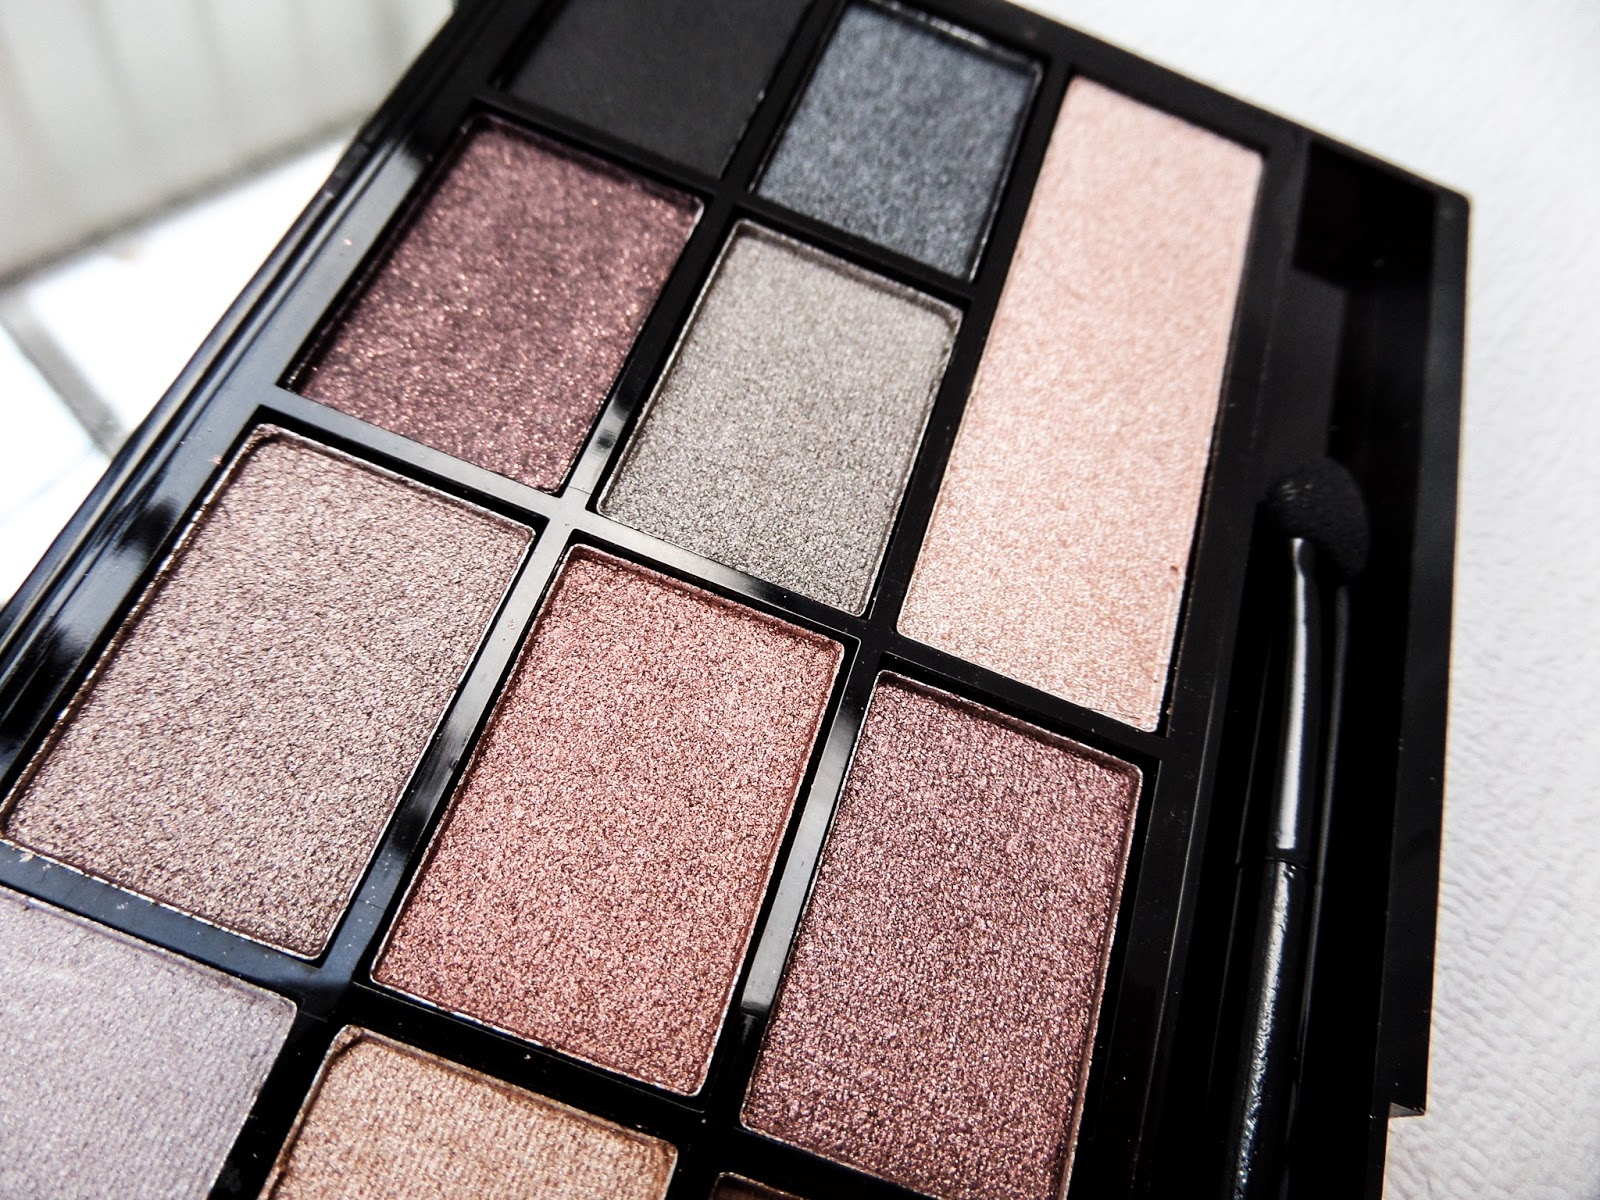 The Makeup Revolution I ♡ Makeup Naked Underneath Palette Swatch & Review